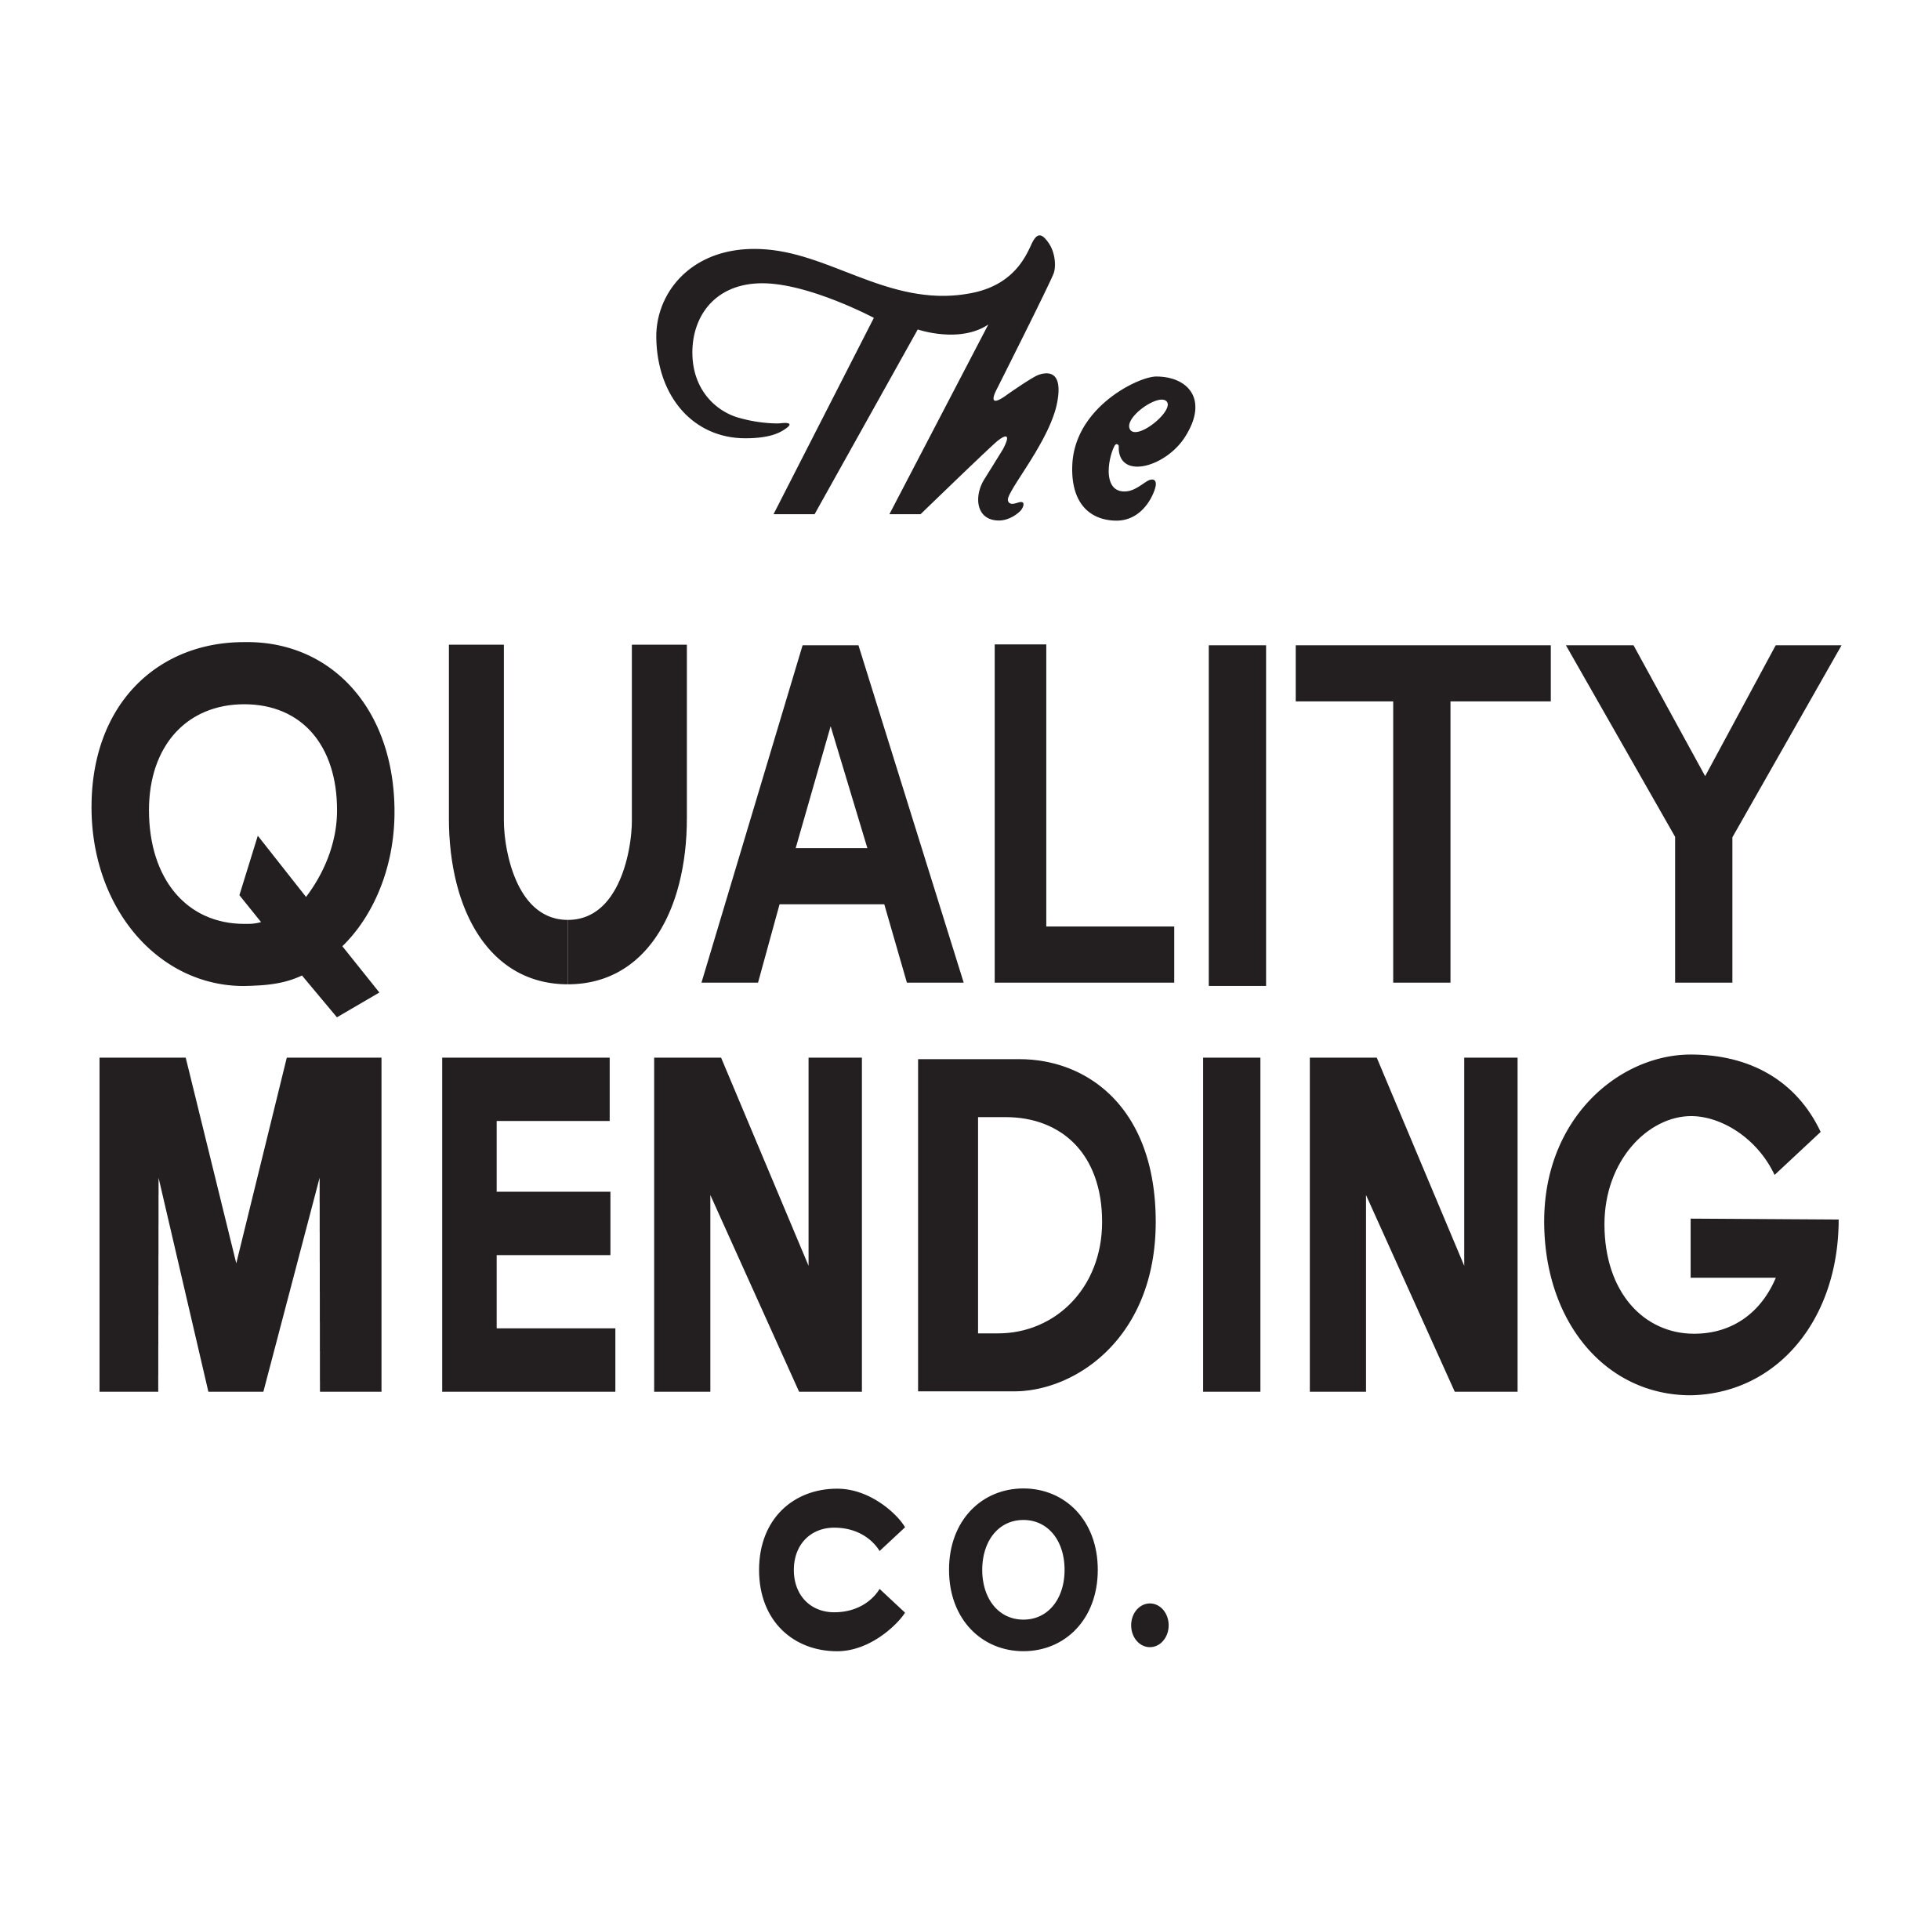 thequalitymendingco